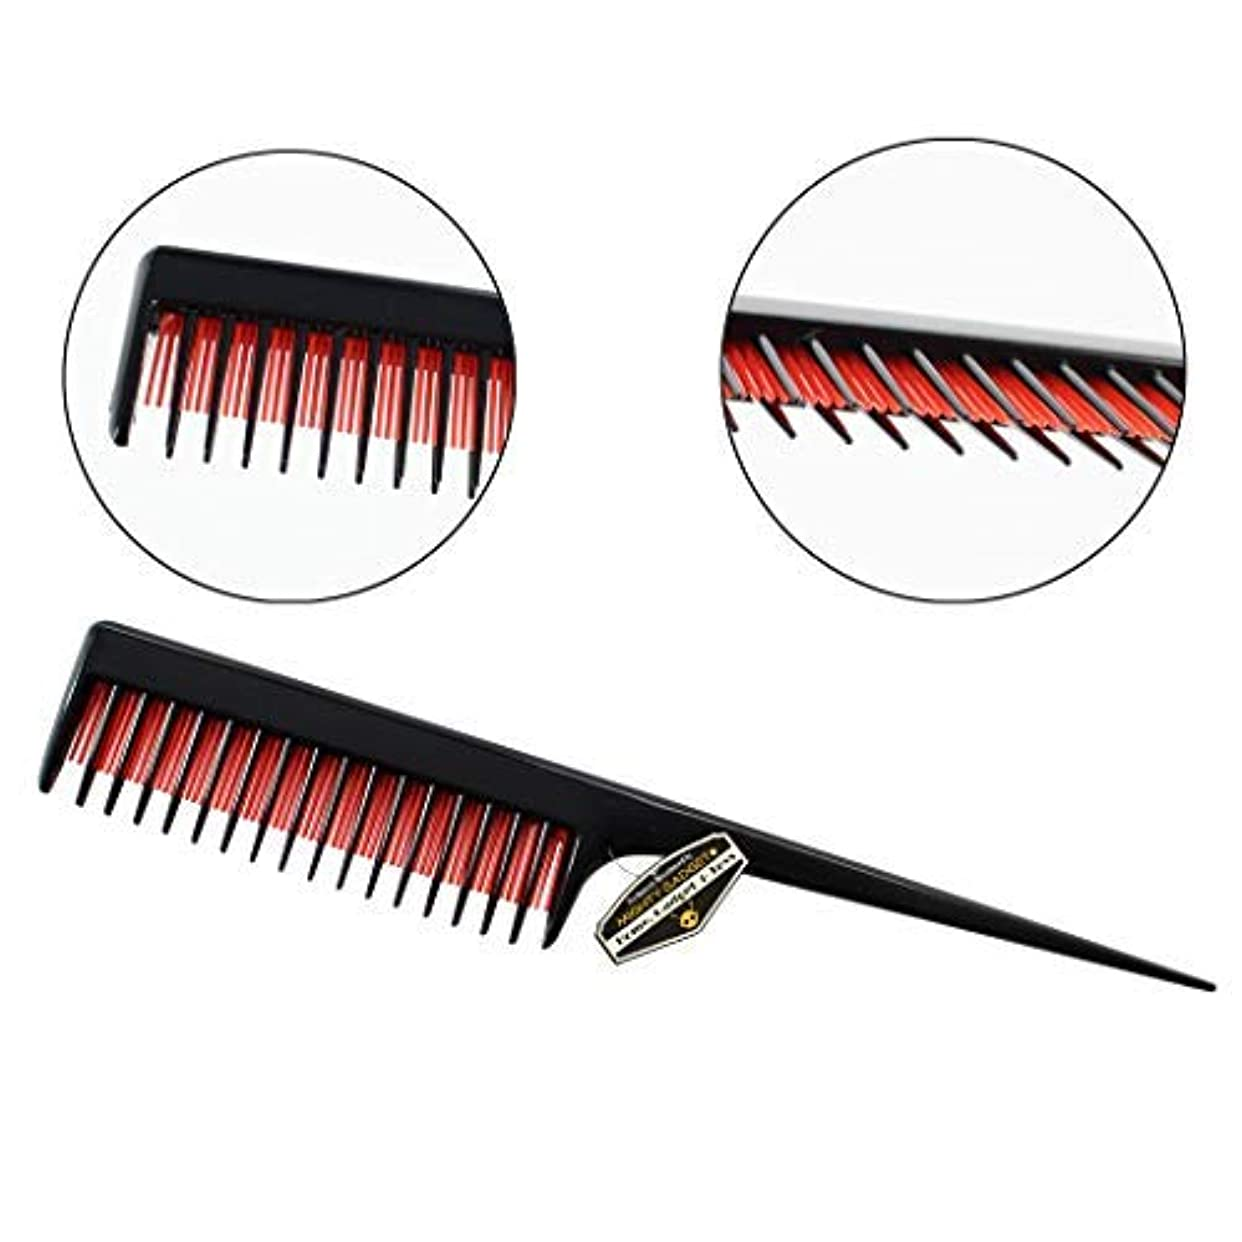 Mighty Gadget 8 inch Teasing Comb - Rat Tail Comb for Back Combing, Root Teasing, Adding Volume, Evening Styling...